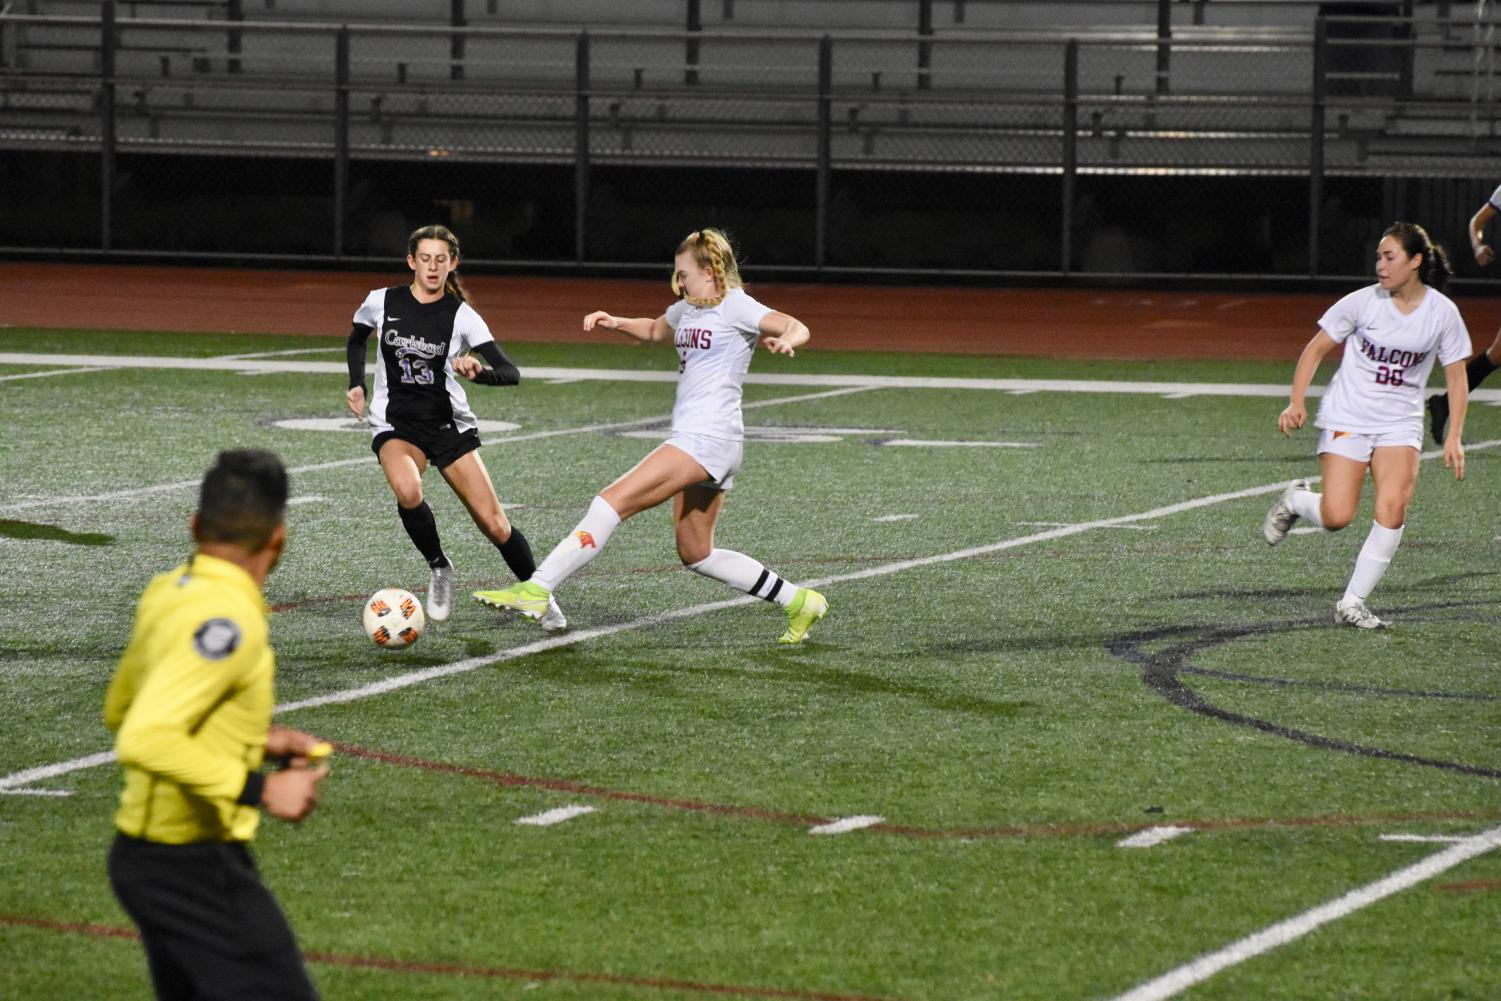 Junior Lexi Wright runs through the Torrey Pines defense as she tries to score. The varsity girls team got the win against Torrey with an end score of 2-1.